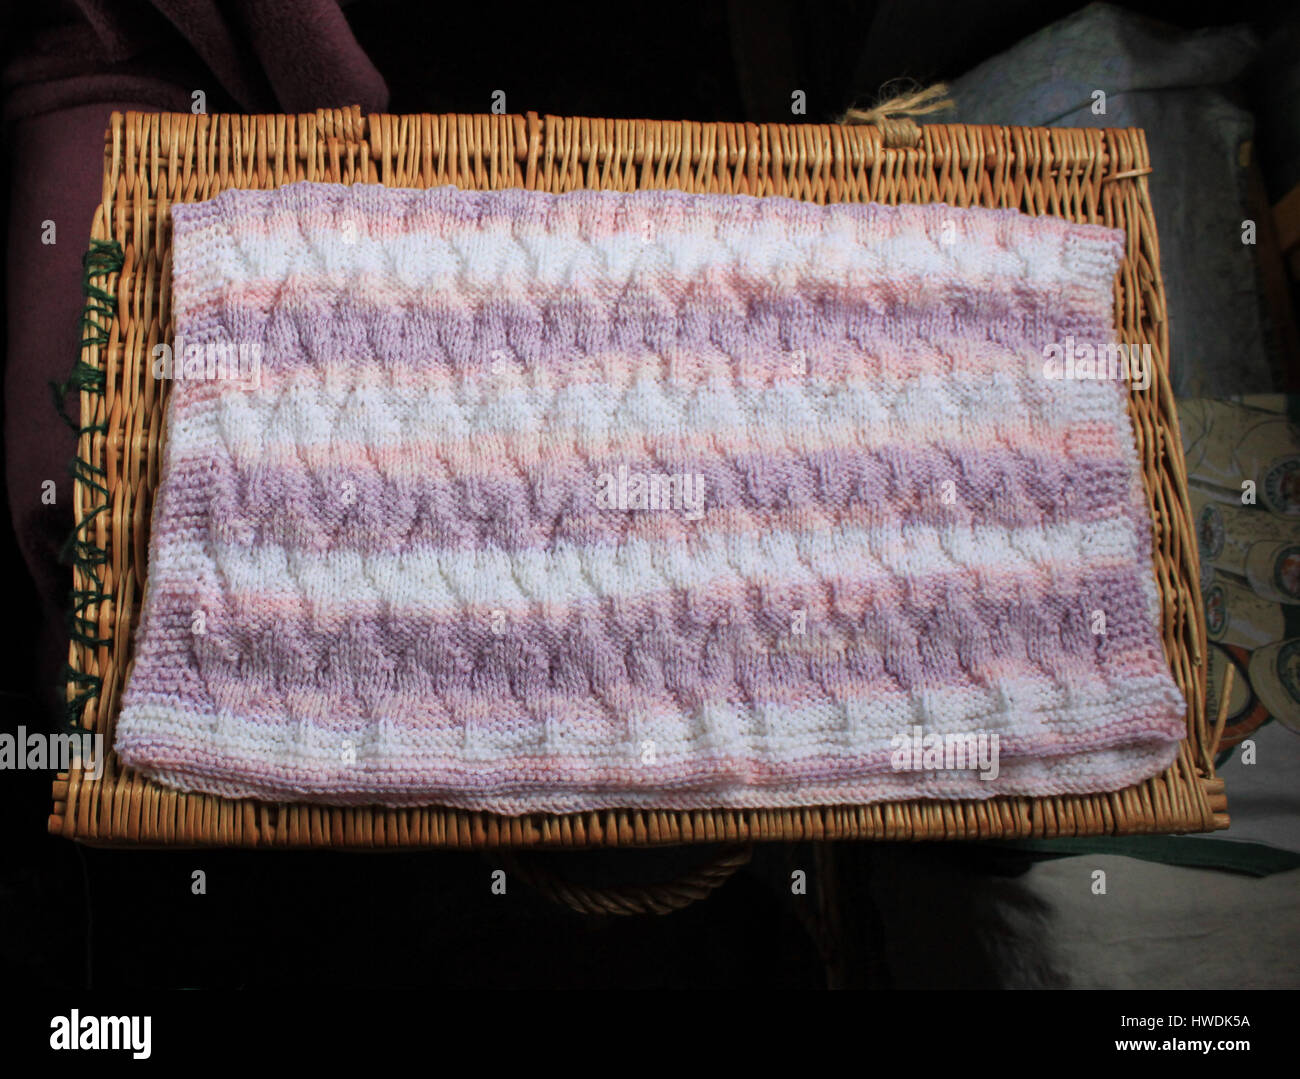 A lovely soft hand knitted baby blanket in colours of pastel shades of pinks, lilac, through to whites. The blanket - Stock Image